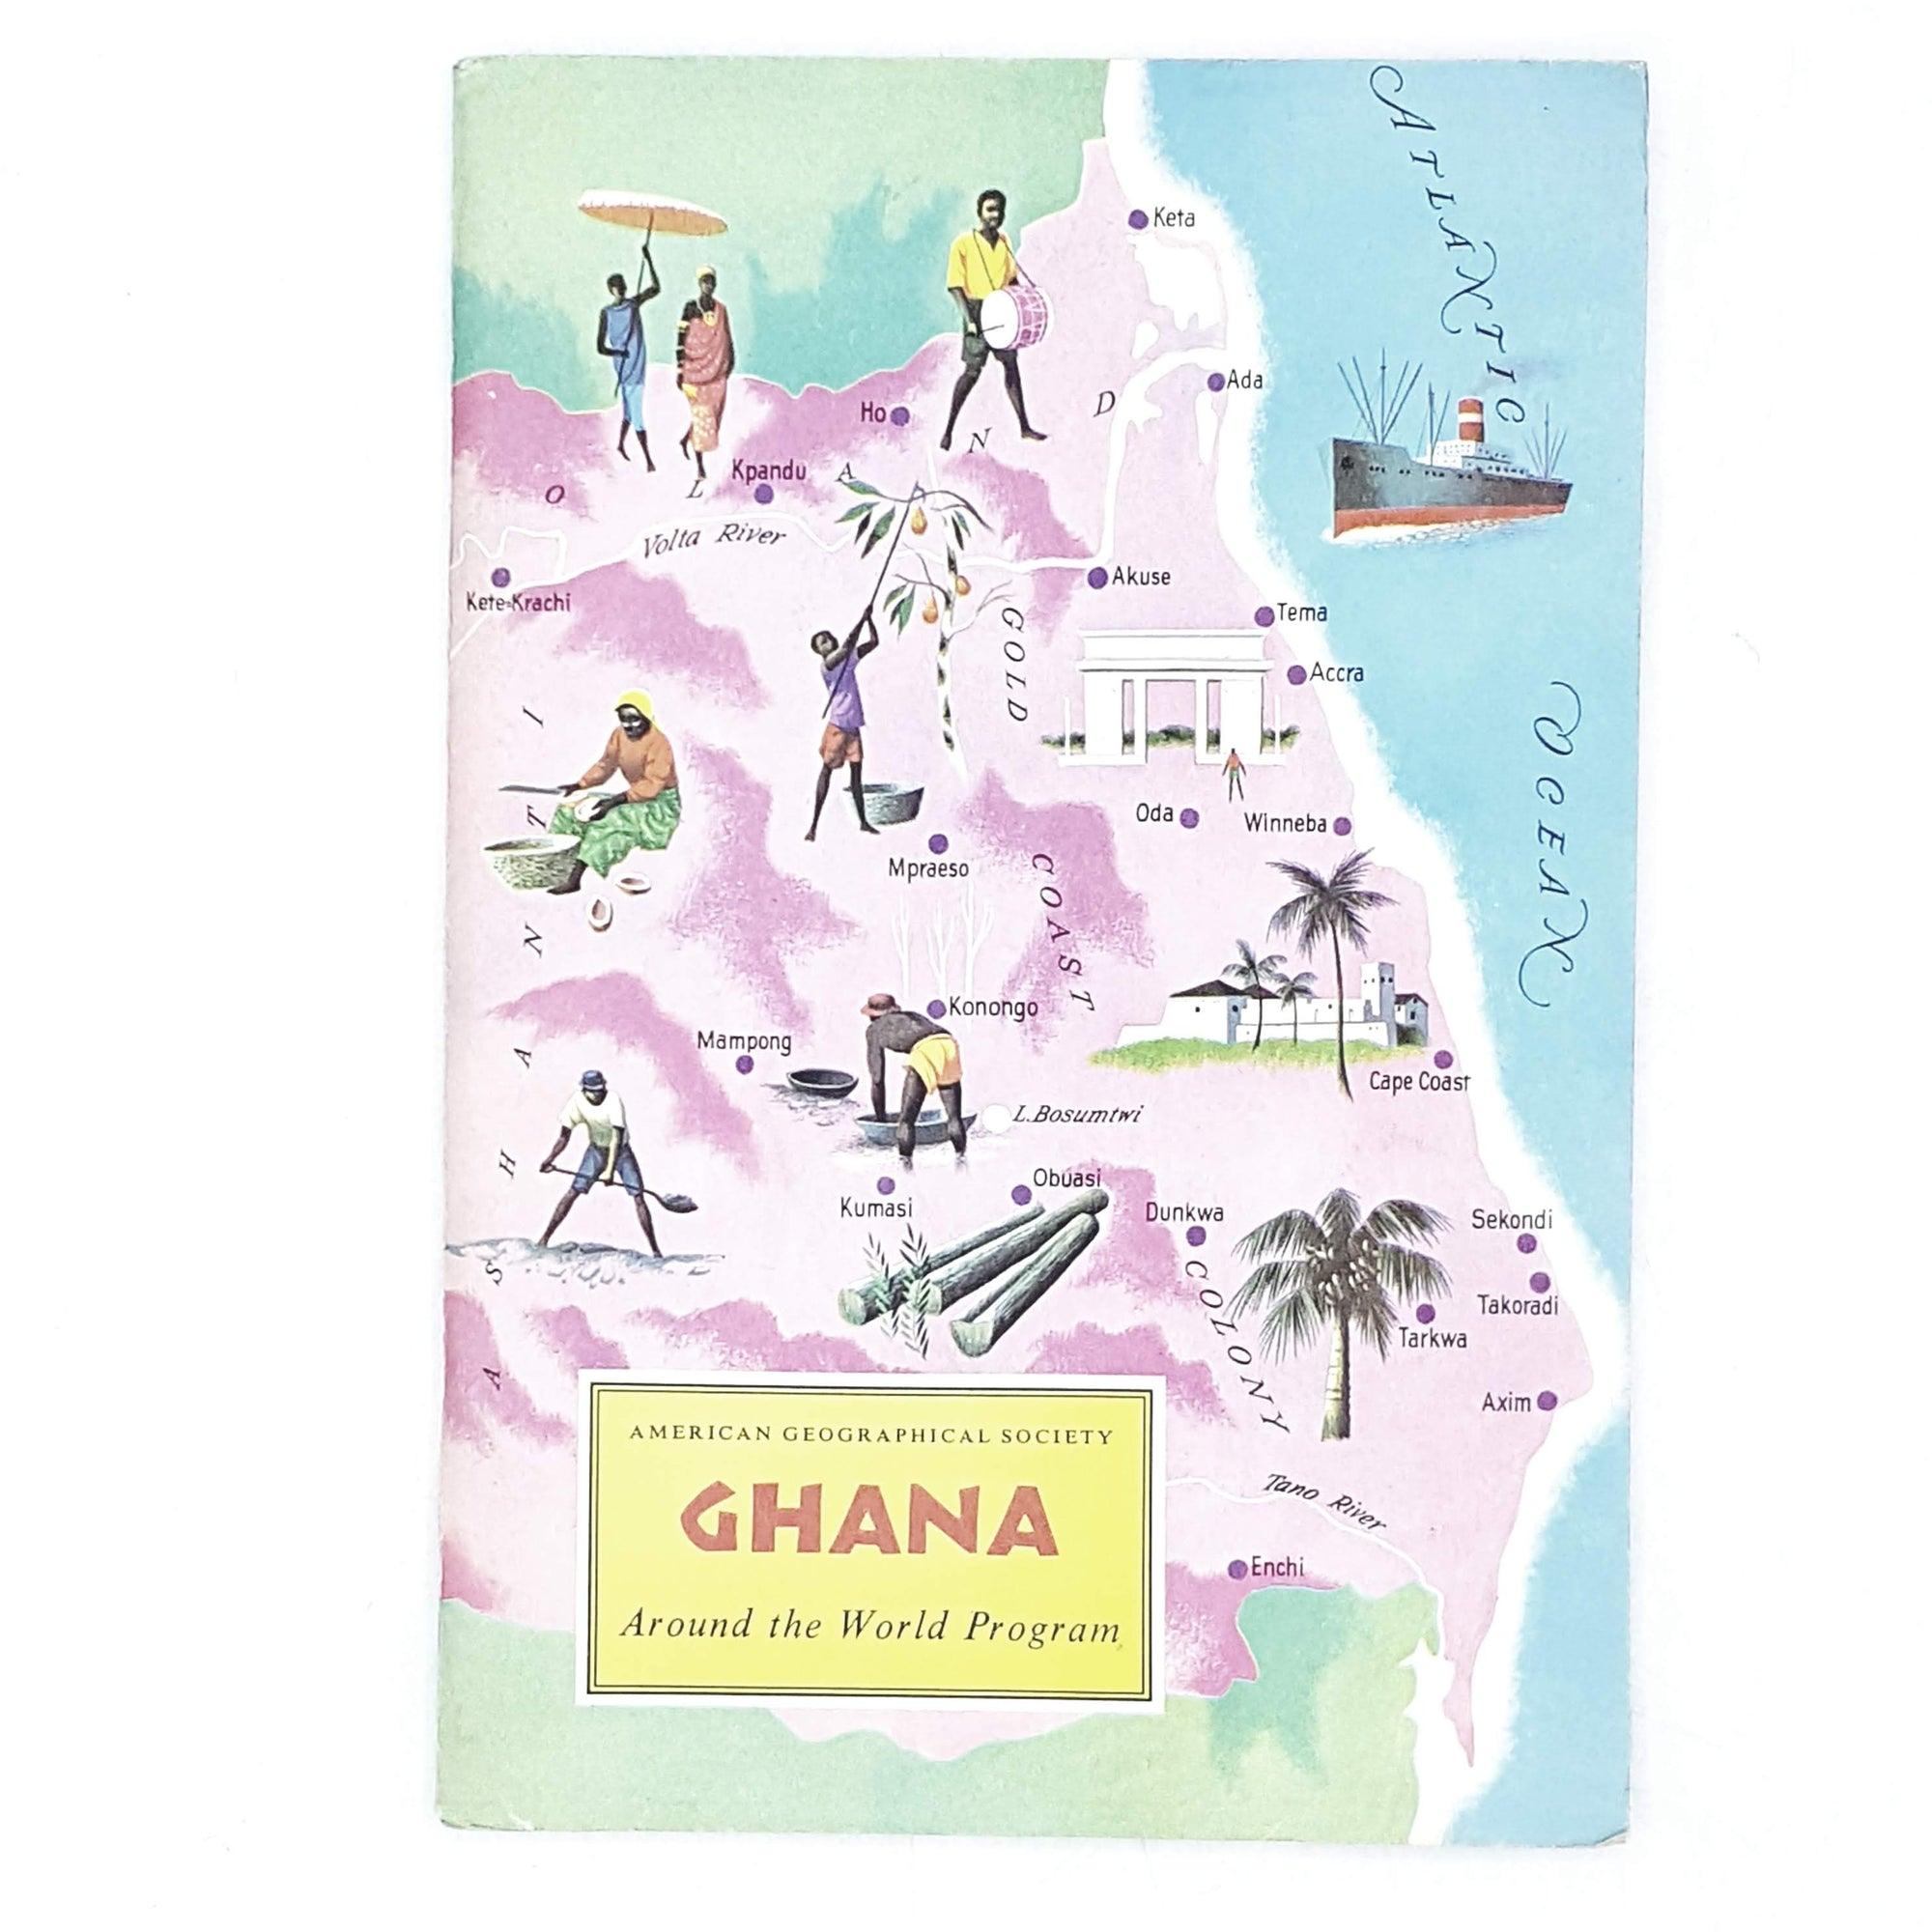 Vintage Travel: Ghana by Dr. George Kimble 1965